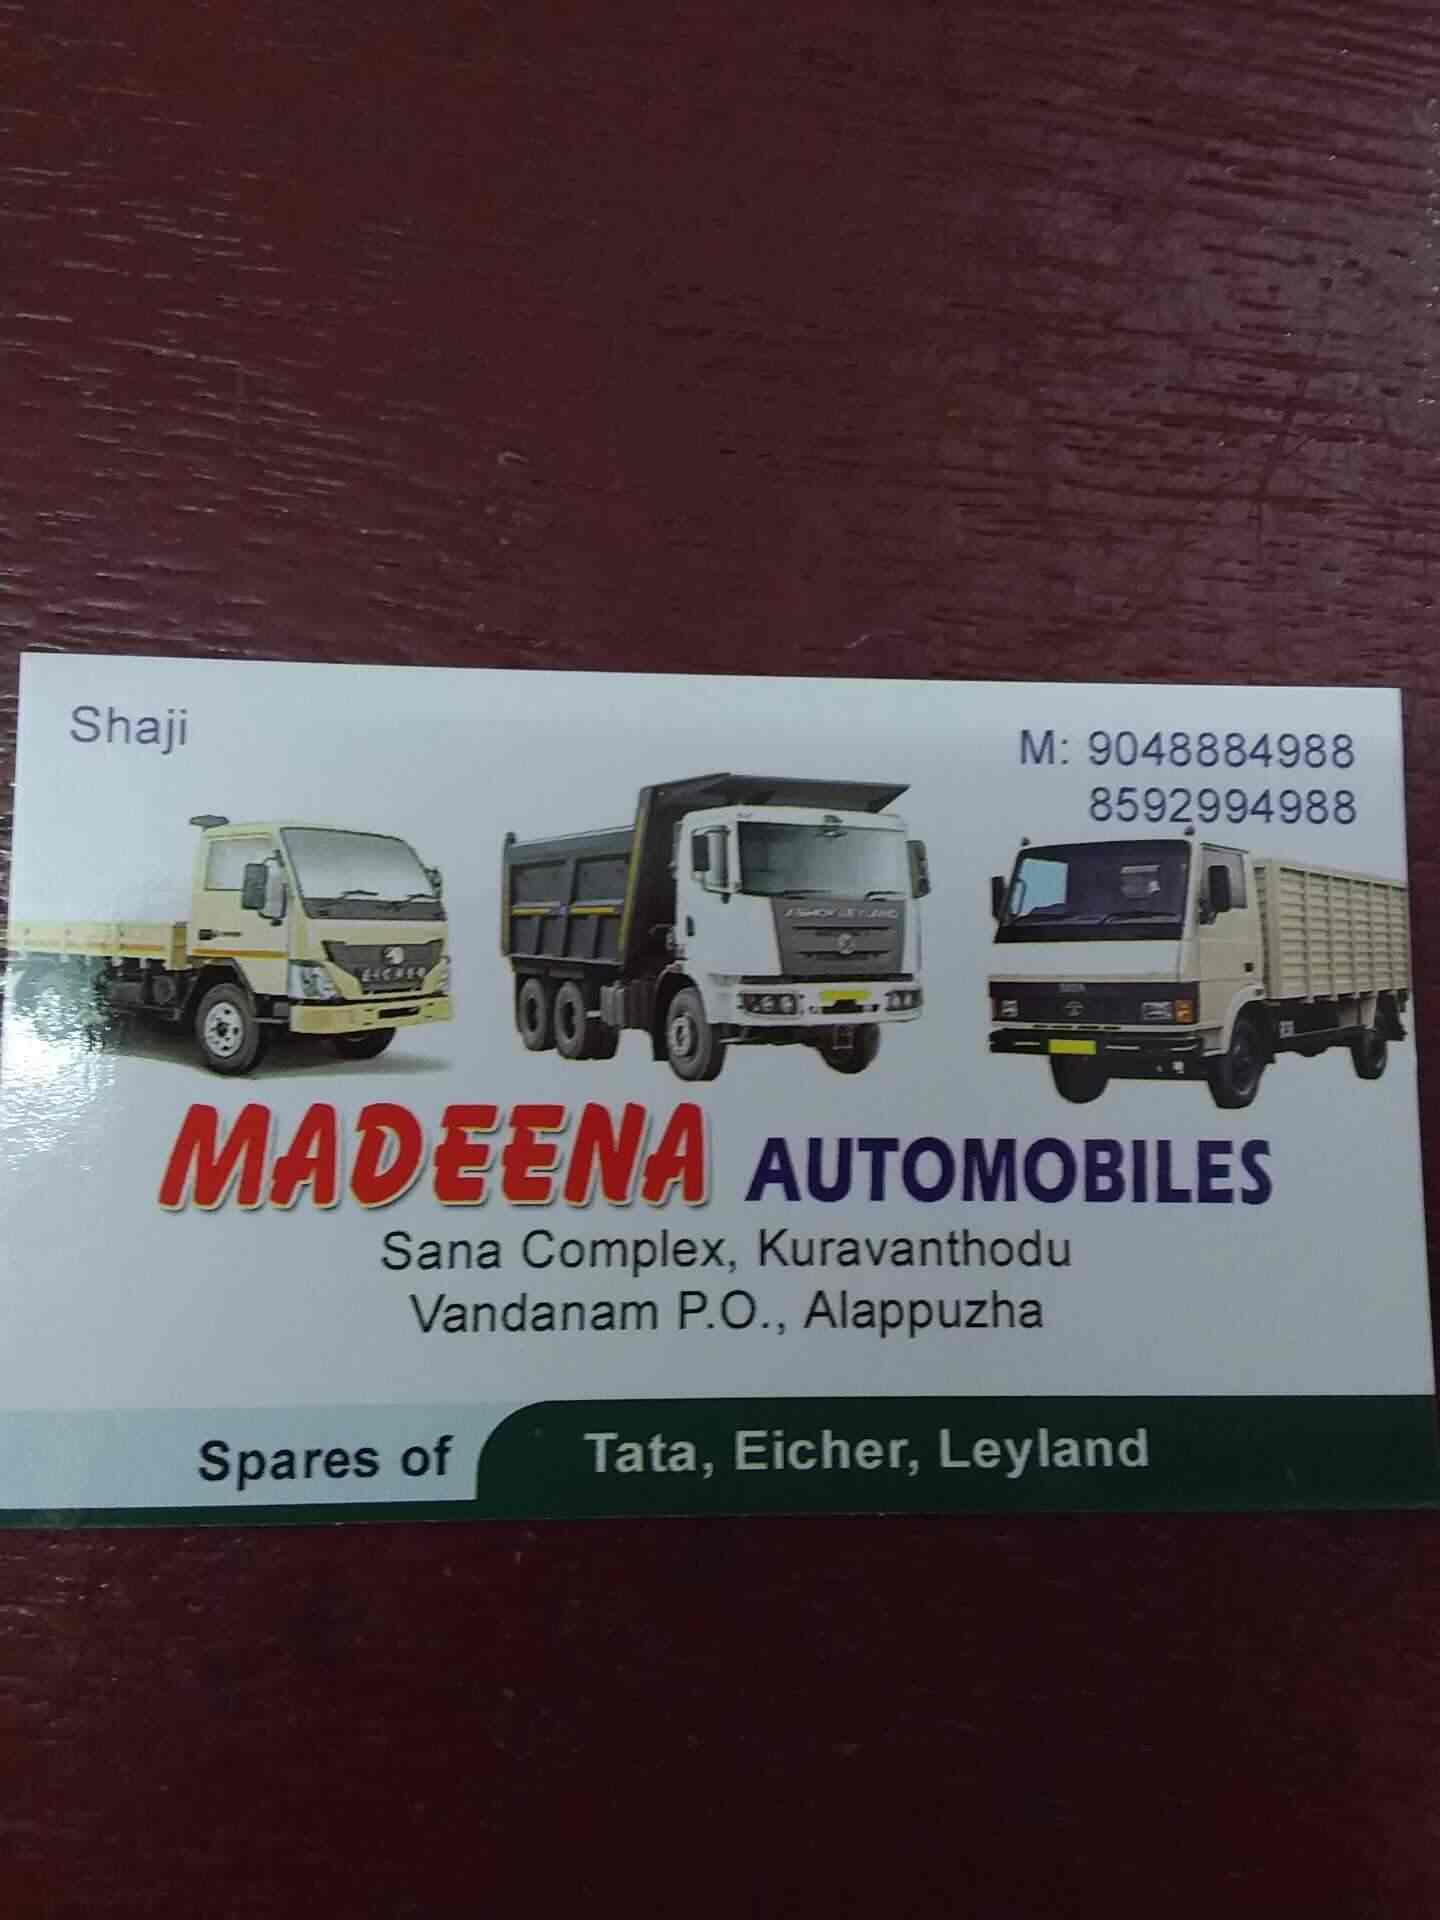 hight resolution of madeena automobiles kakkazhom automobile part dealers in alappuzha justdial